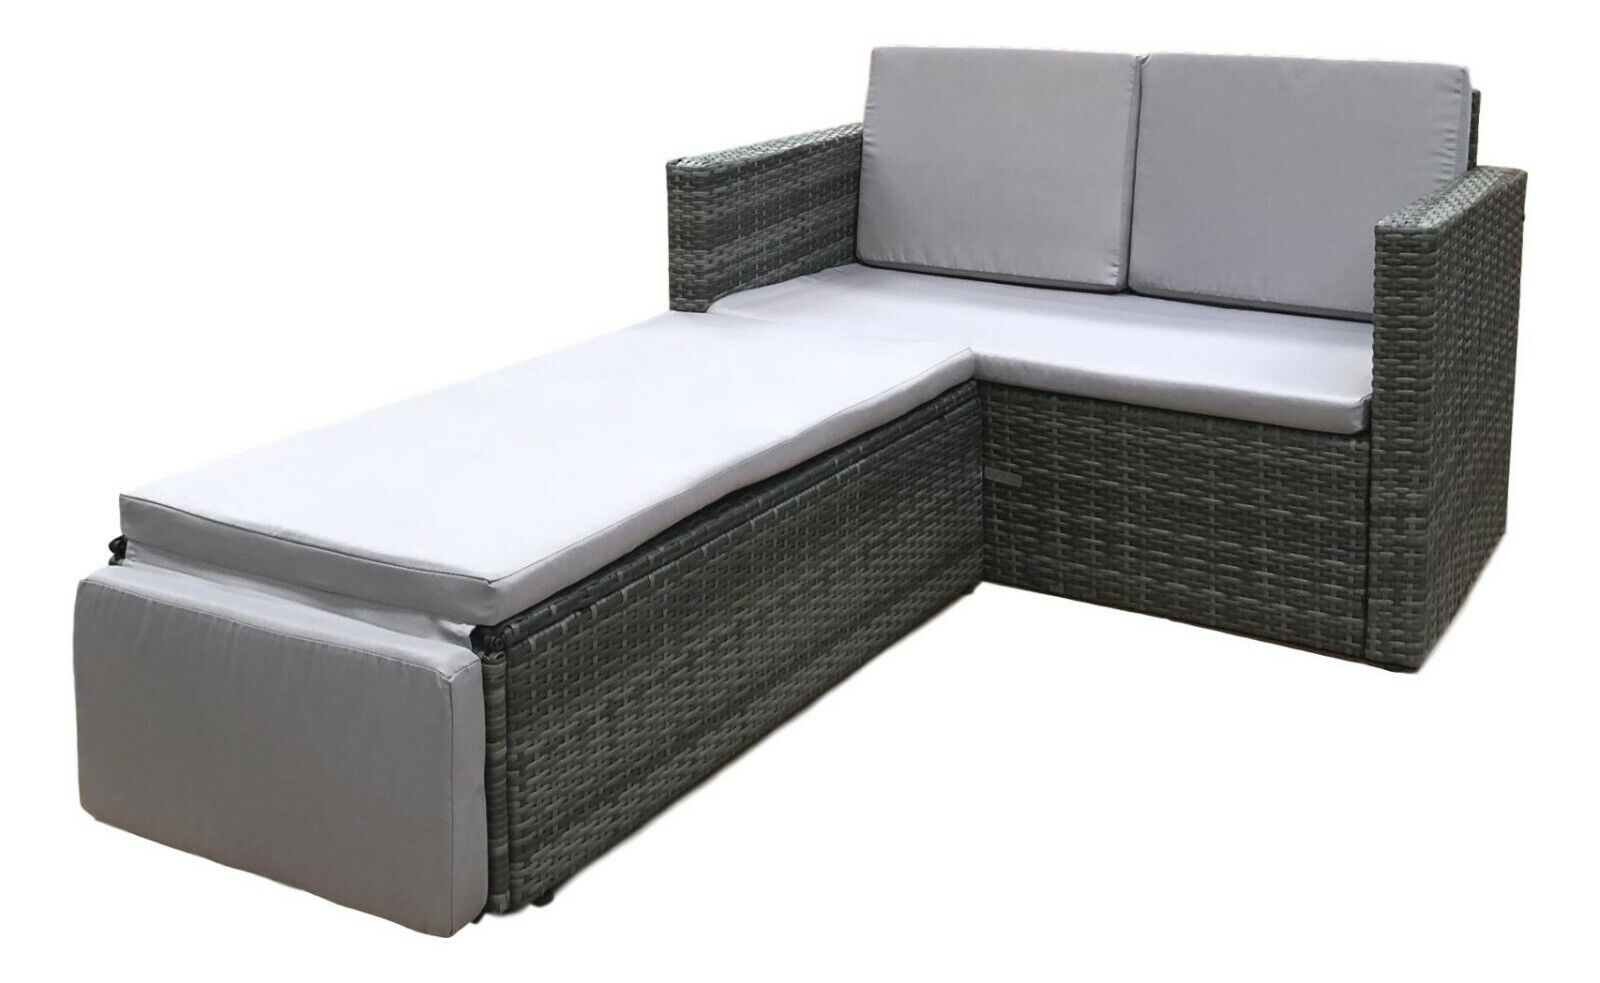 Garden Furniture - Rattan Outdoor Garden Sofa Furniture Love Bed Patio Sun bed 2 seater Grey New